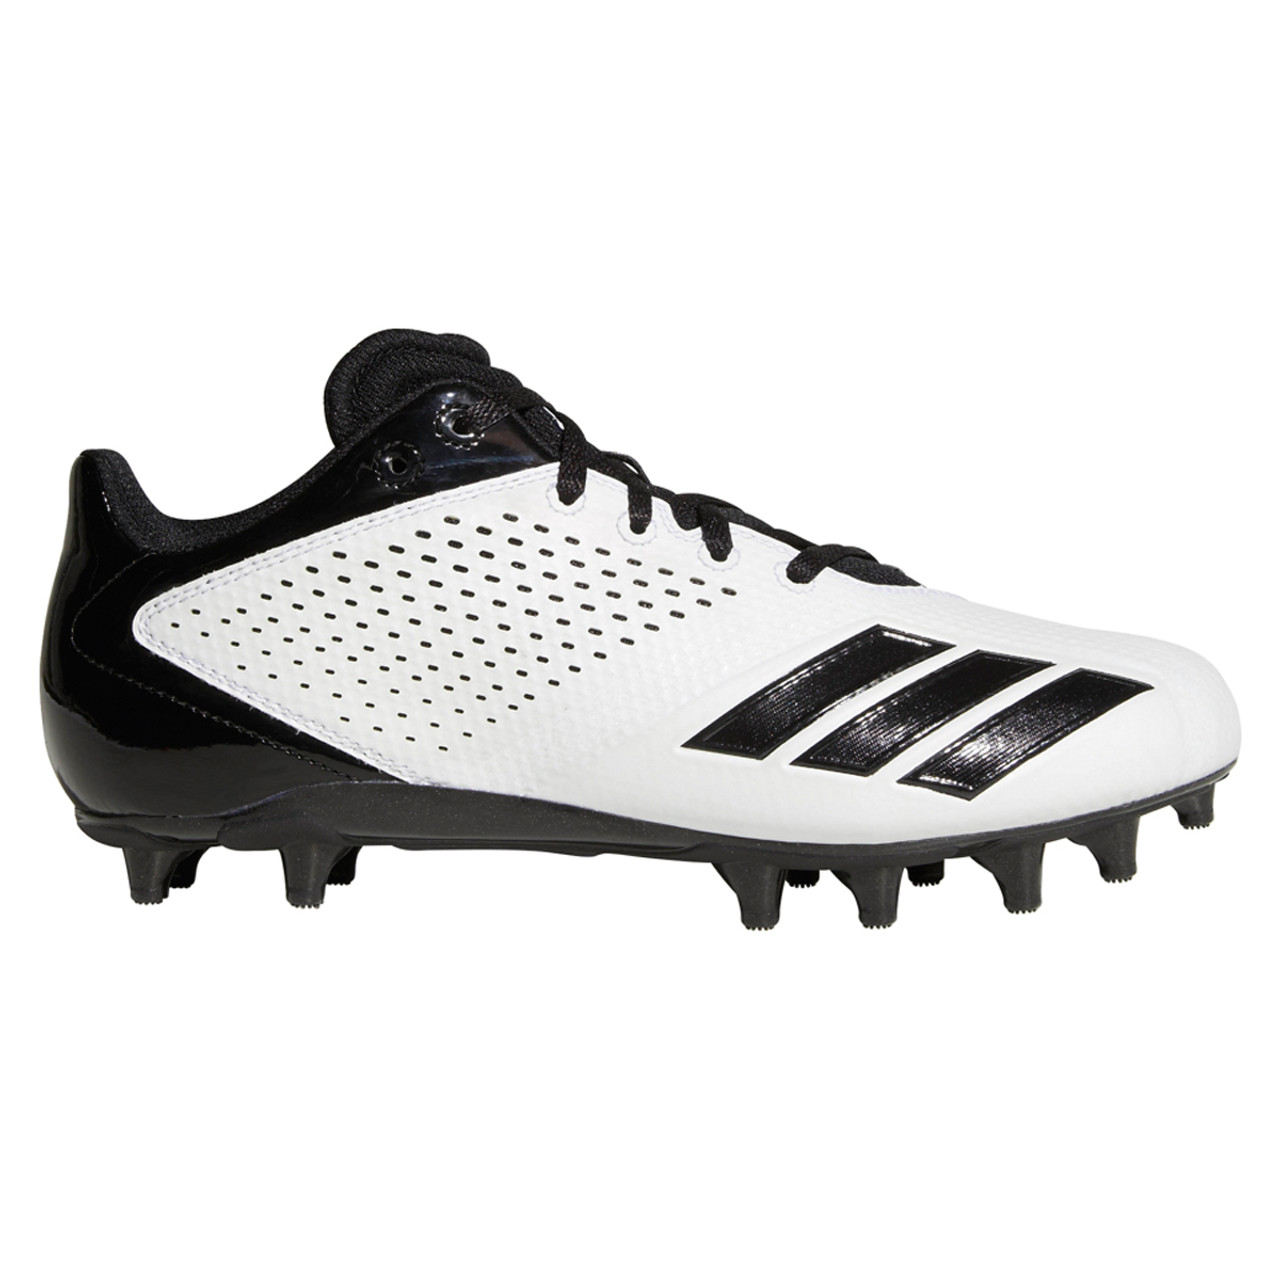 Adidas 5-Star Low Men's Football Cleats CG4323 - White, Black